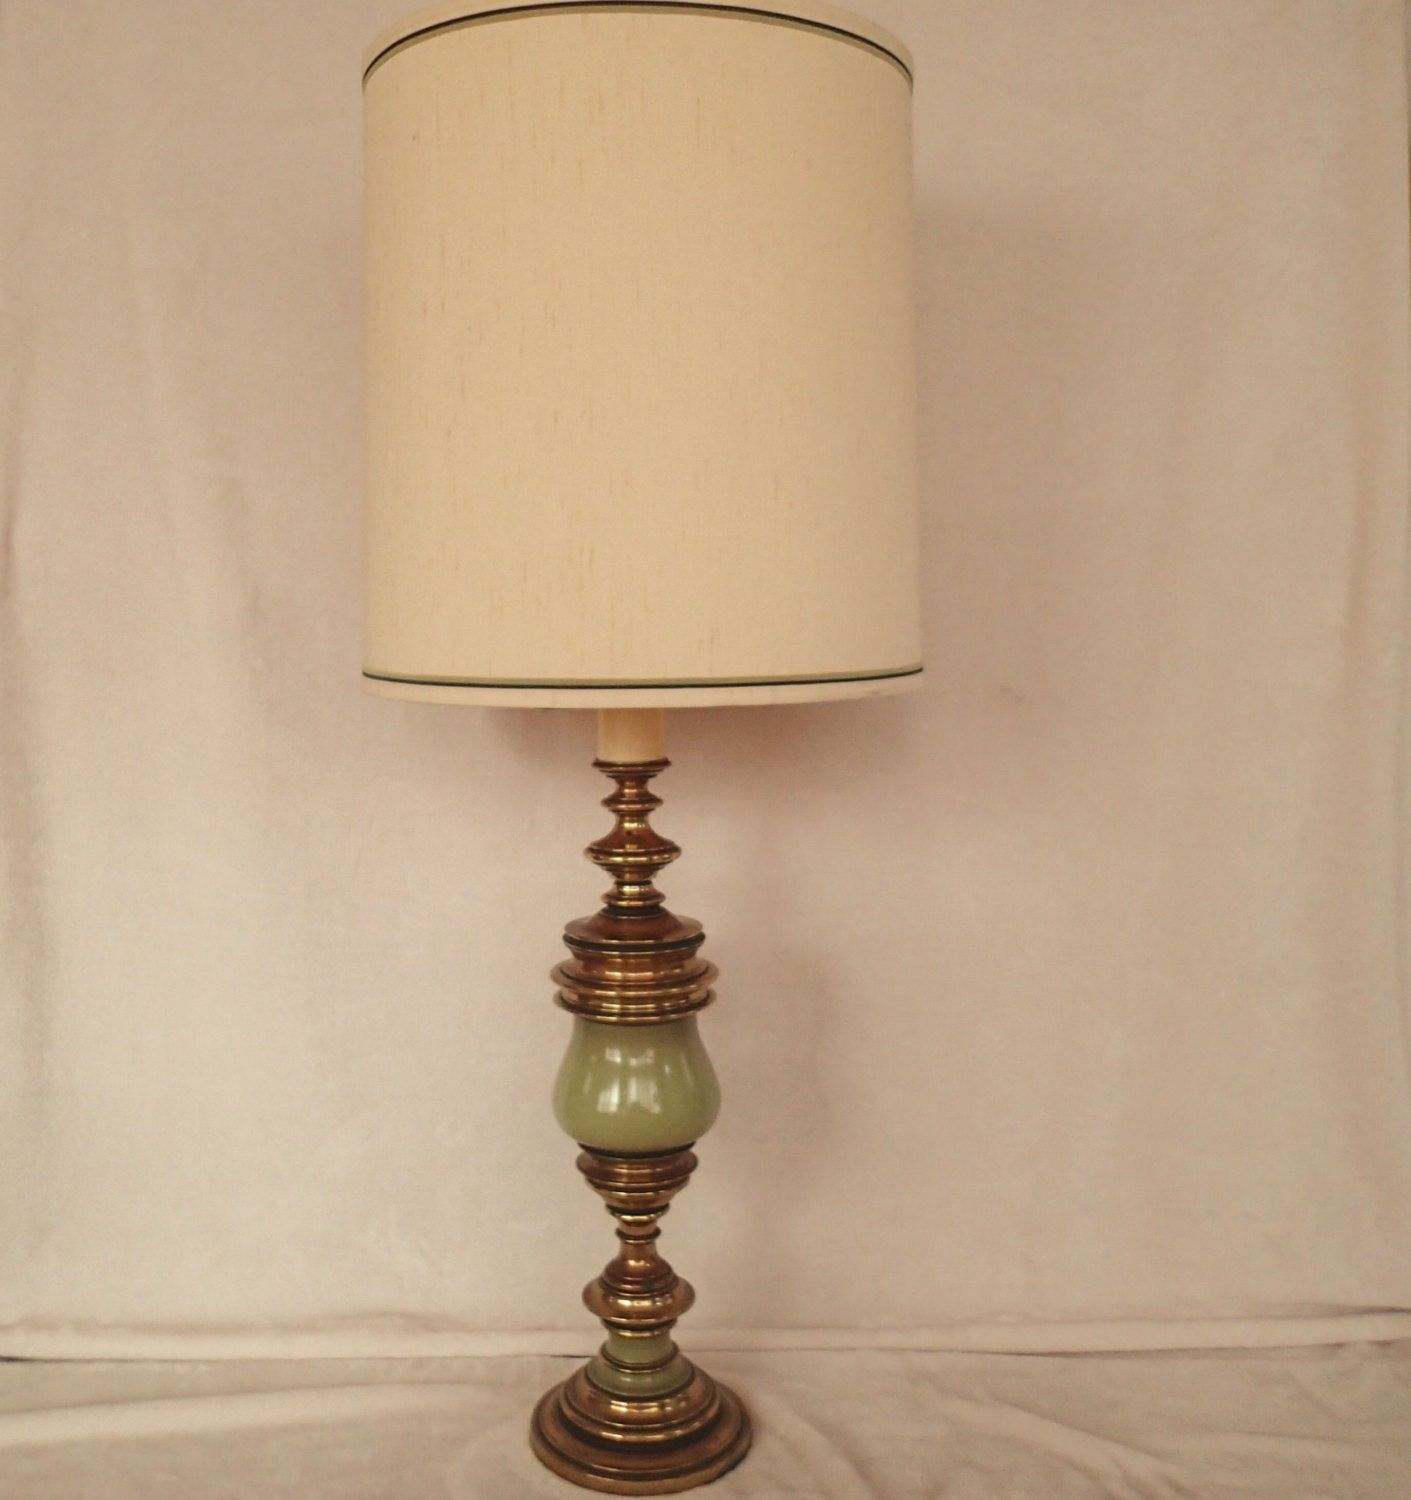 Table lamp green enameled brass hollywood regency mid century table lamp green enameled brass hollywood regency mid century antique satin original matching vintage aloadofball Choice Image